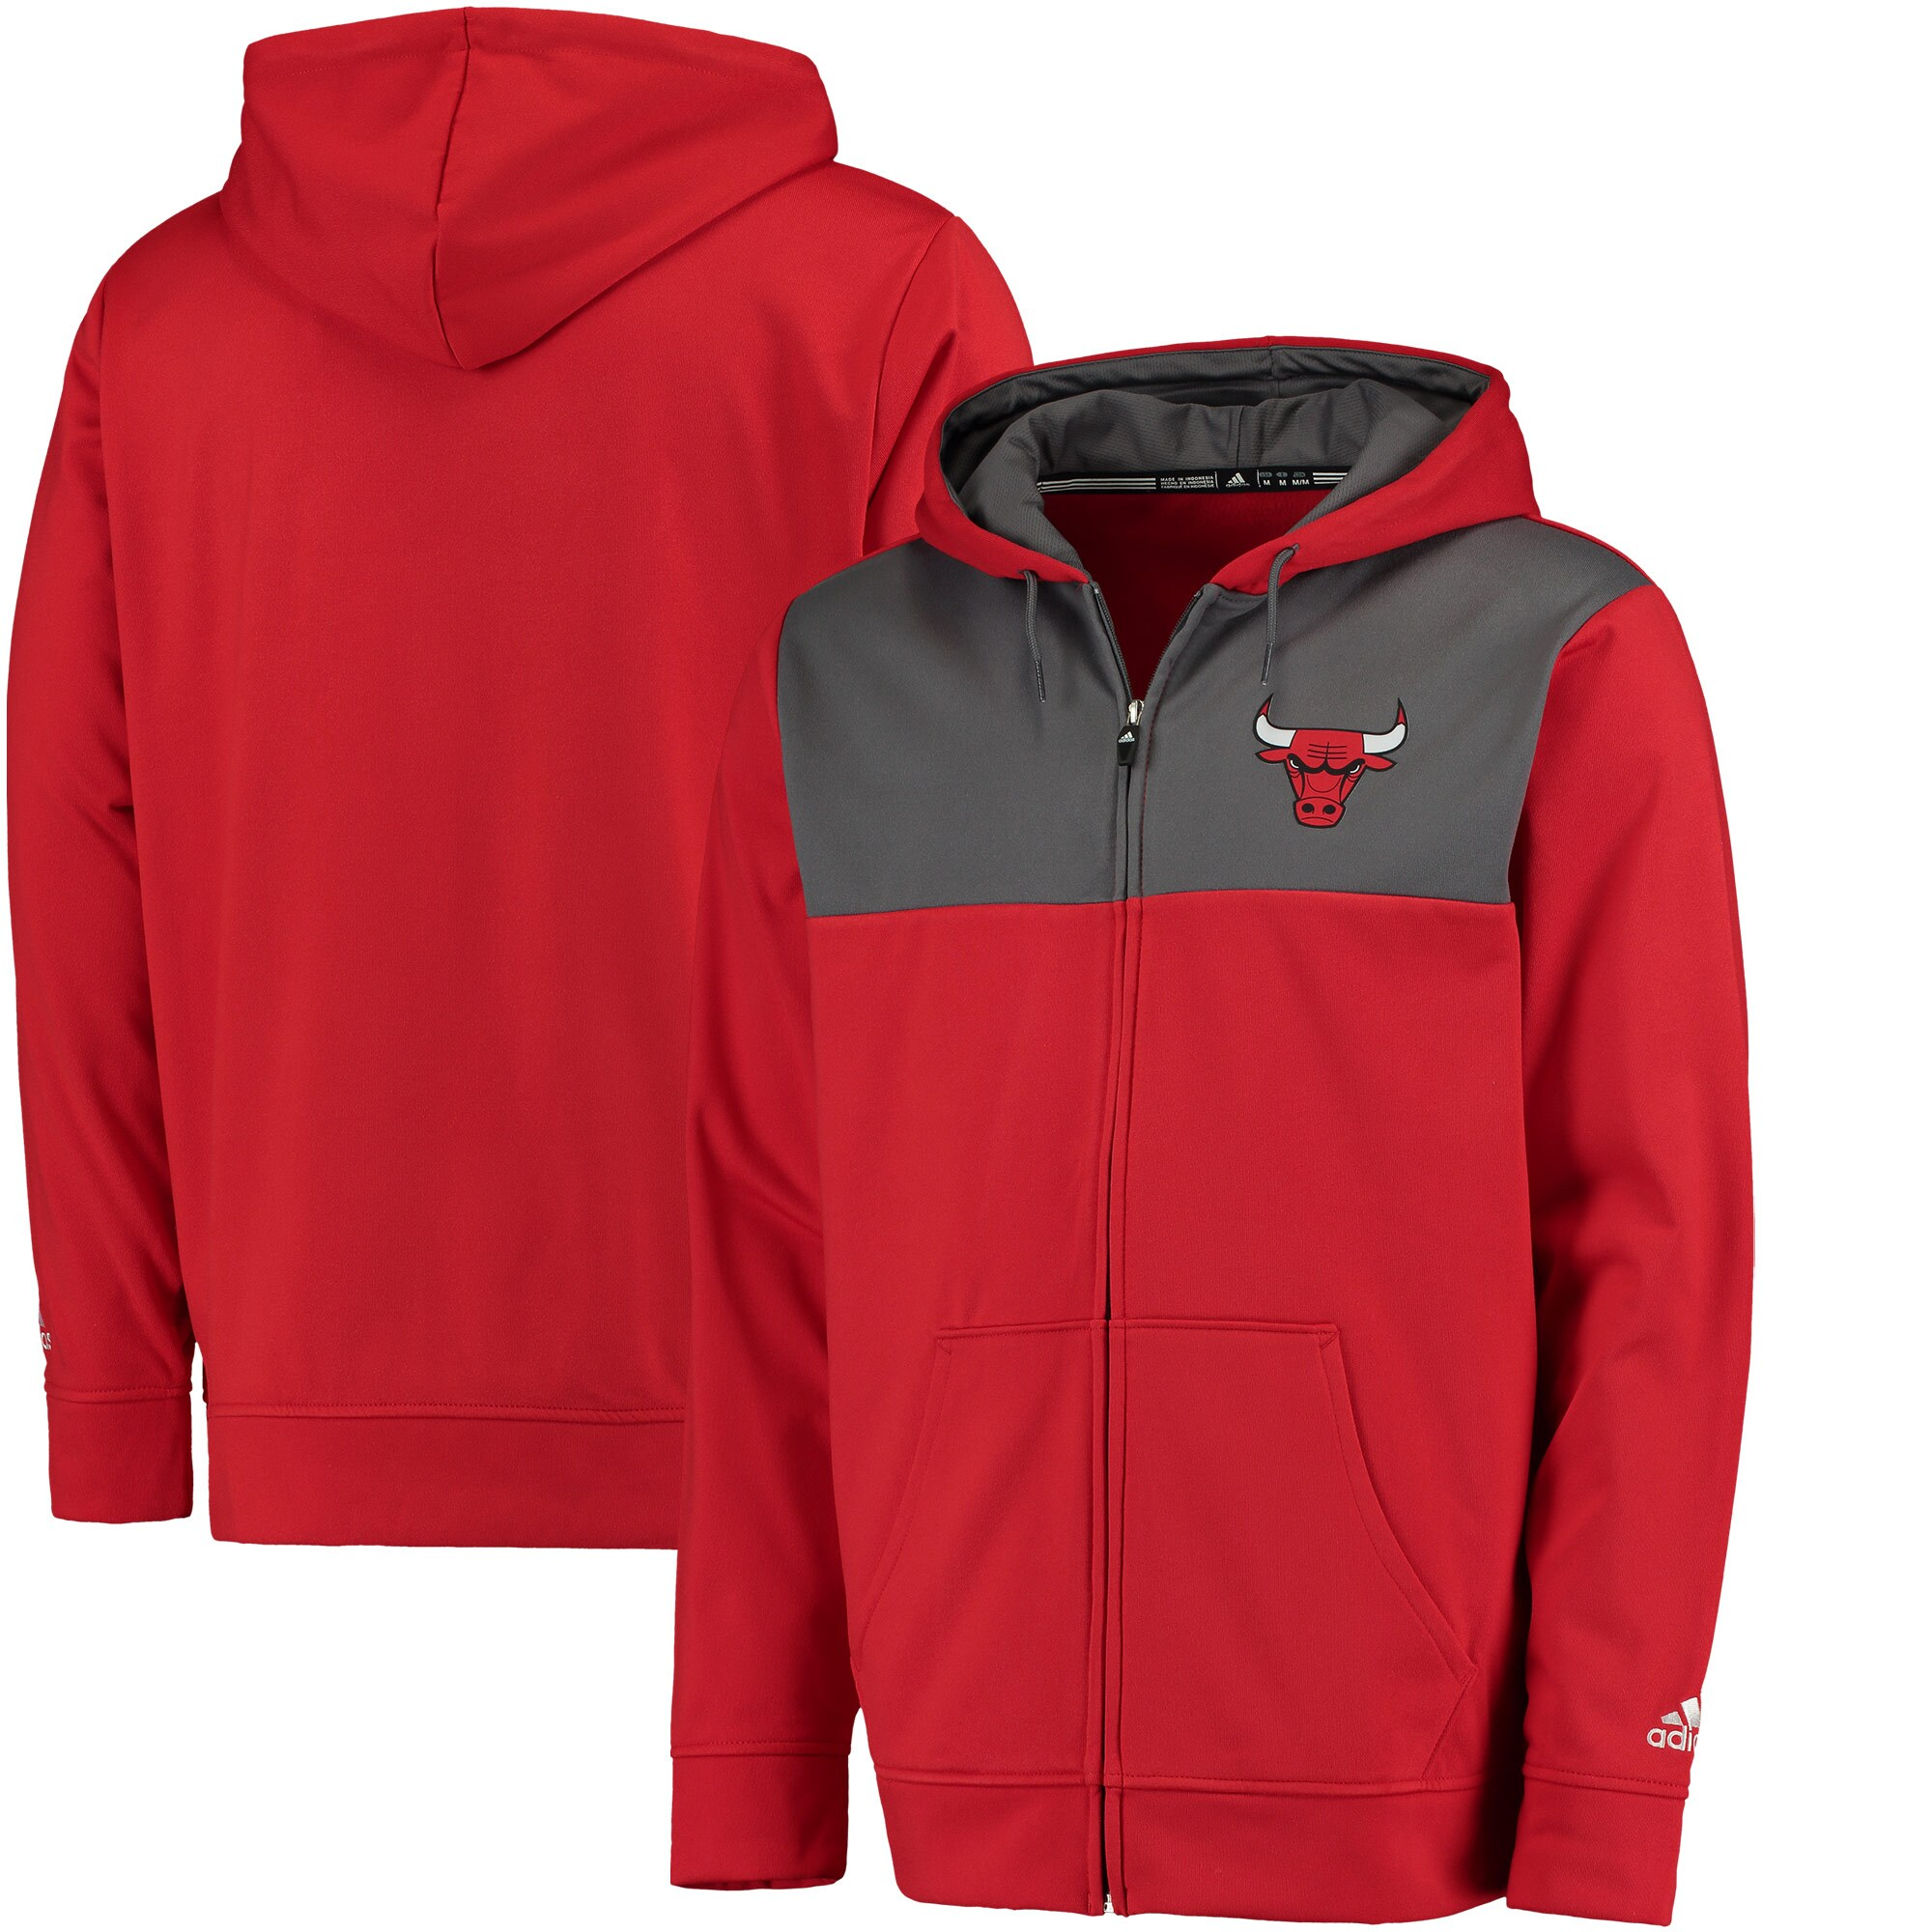 Chicago Bulls adidas 2016 Tip-Off Full-Zip Hoodie - Red/Gray